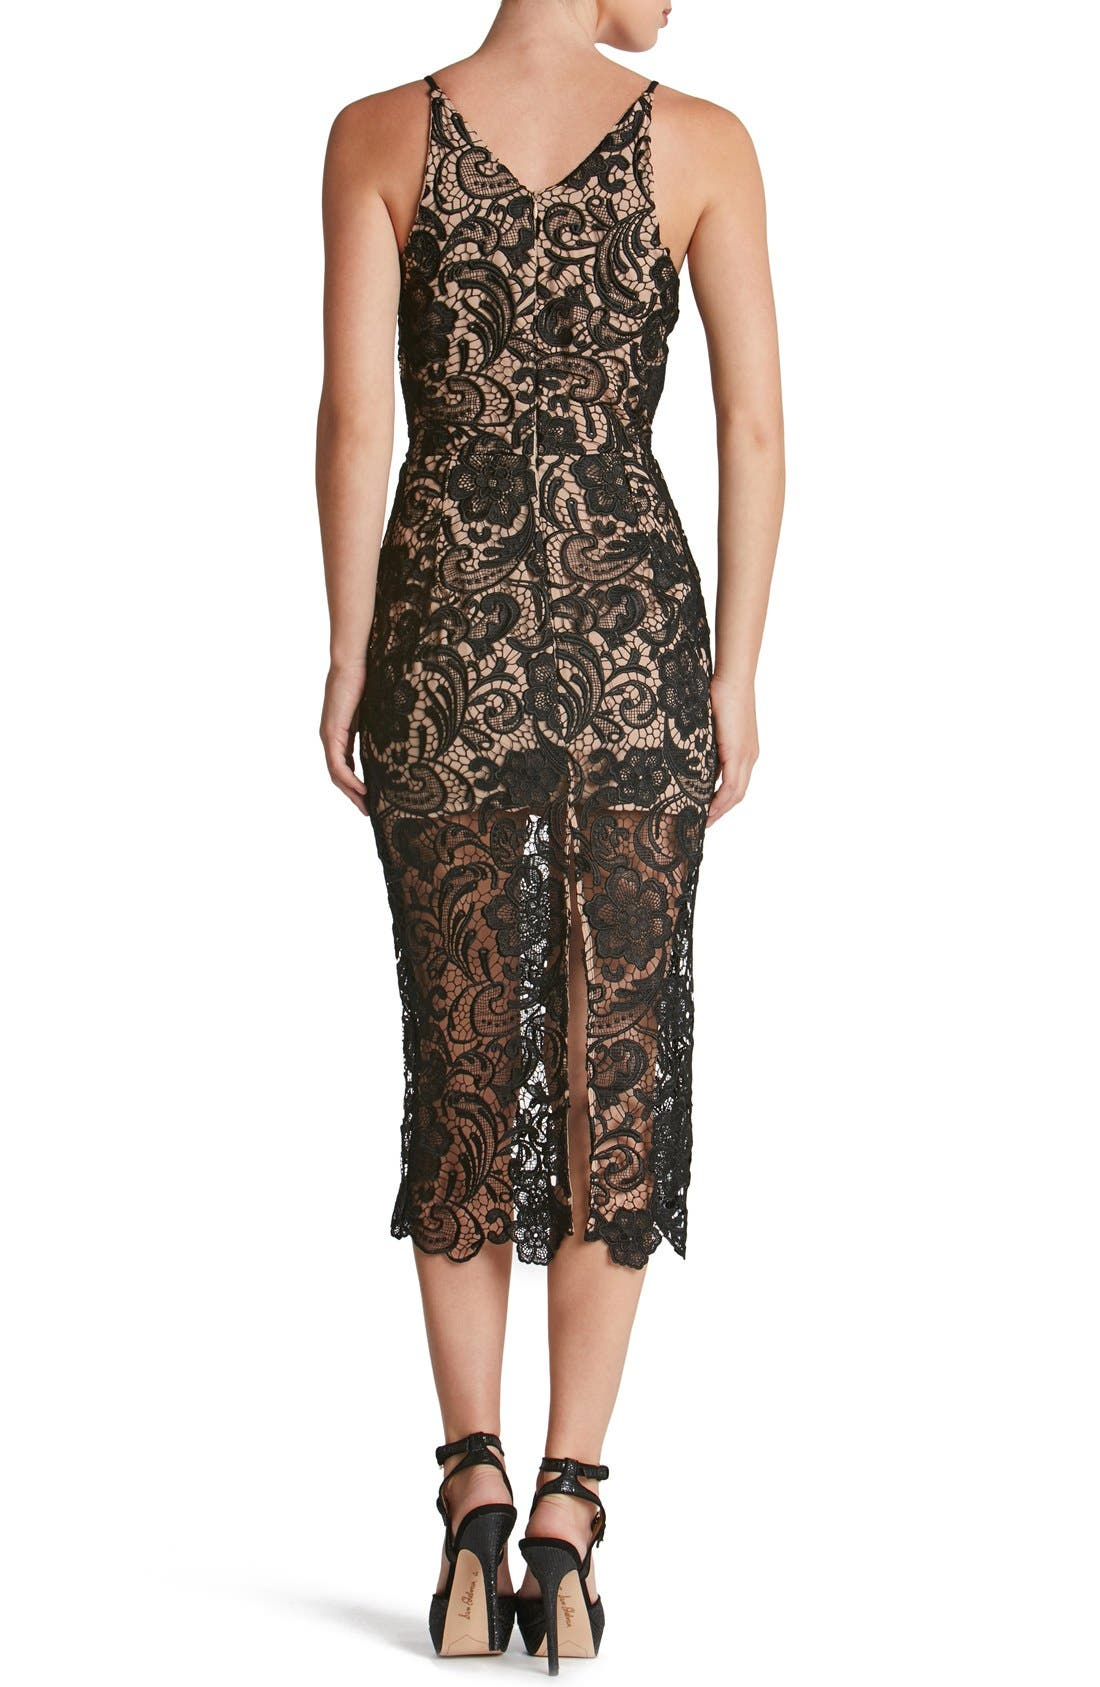 DRESS THE POPULATION,                             'Marie' Lace Midi Dress,                             Alternate thumbnail 5, color,                             004